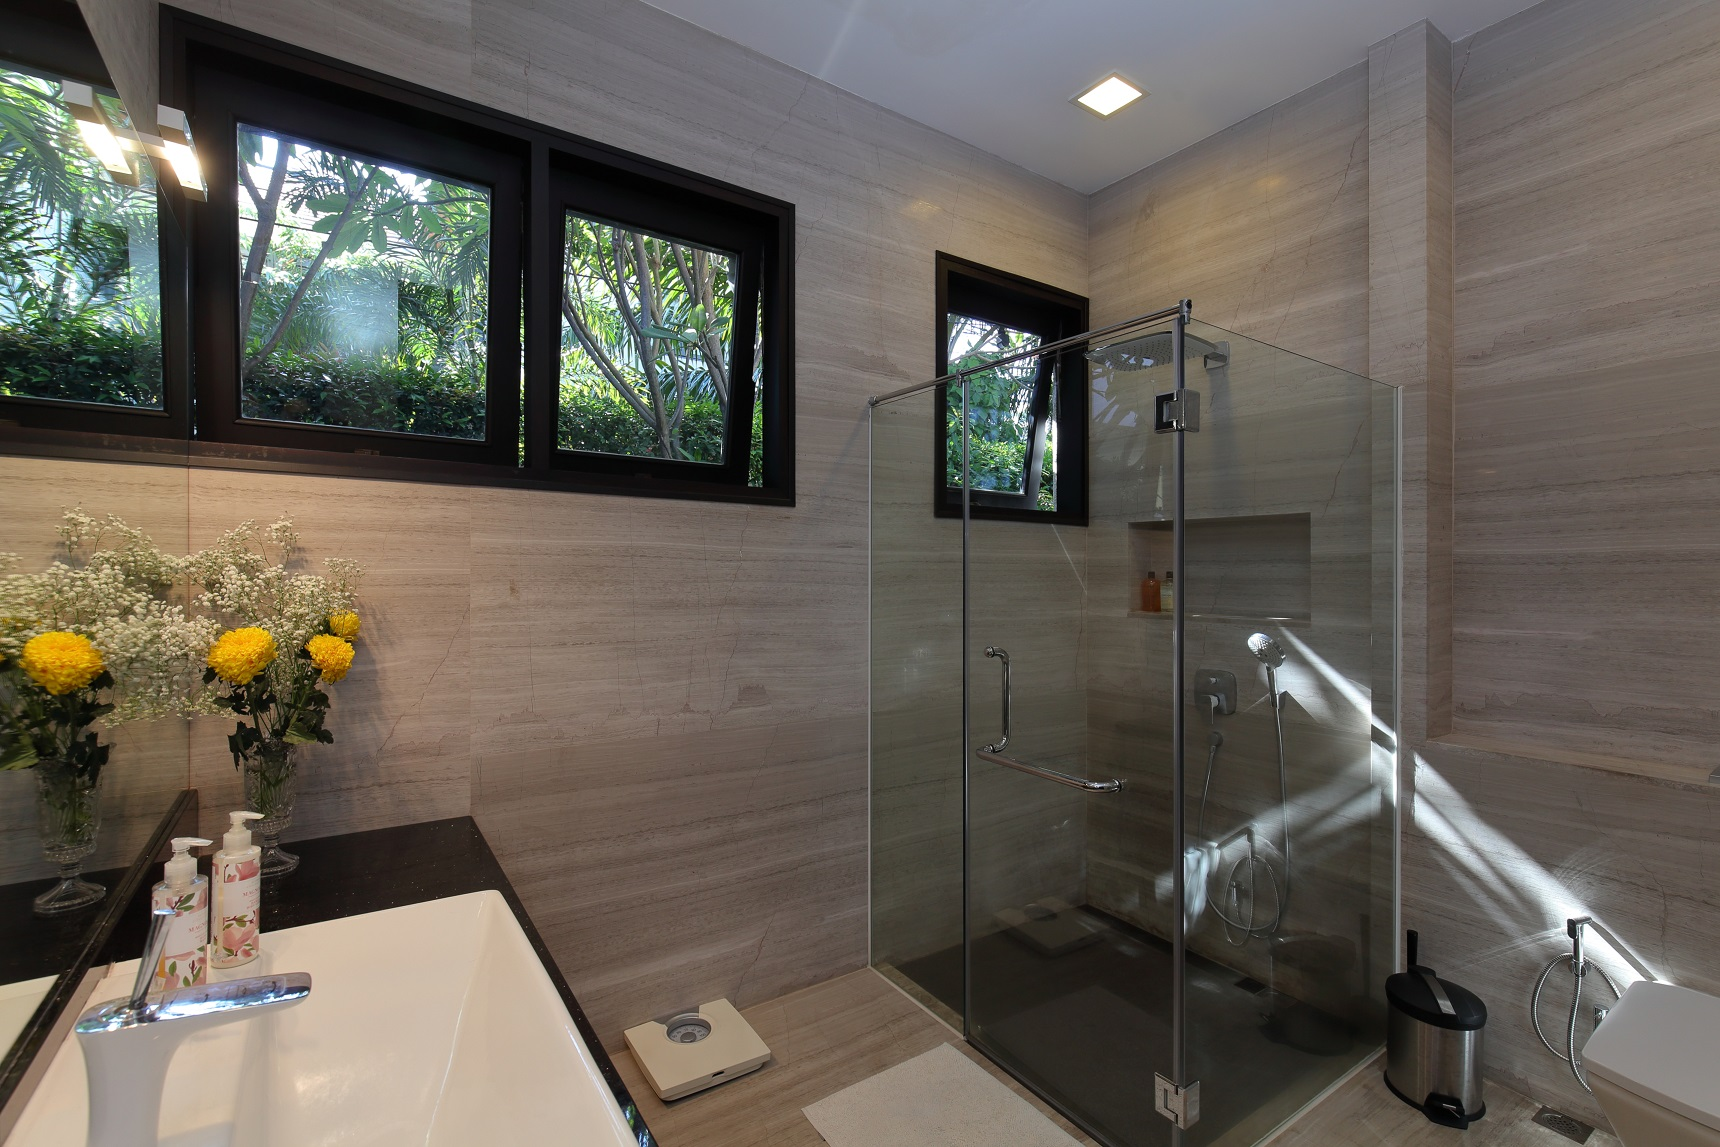 En suite master bathroom and all the other bathrooms in the house were newly refurbished by the owner (Photo: Samuel Isaac Chua/EdgeProp Singapore) - EDGEPROP SINGAPORE